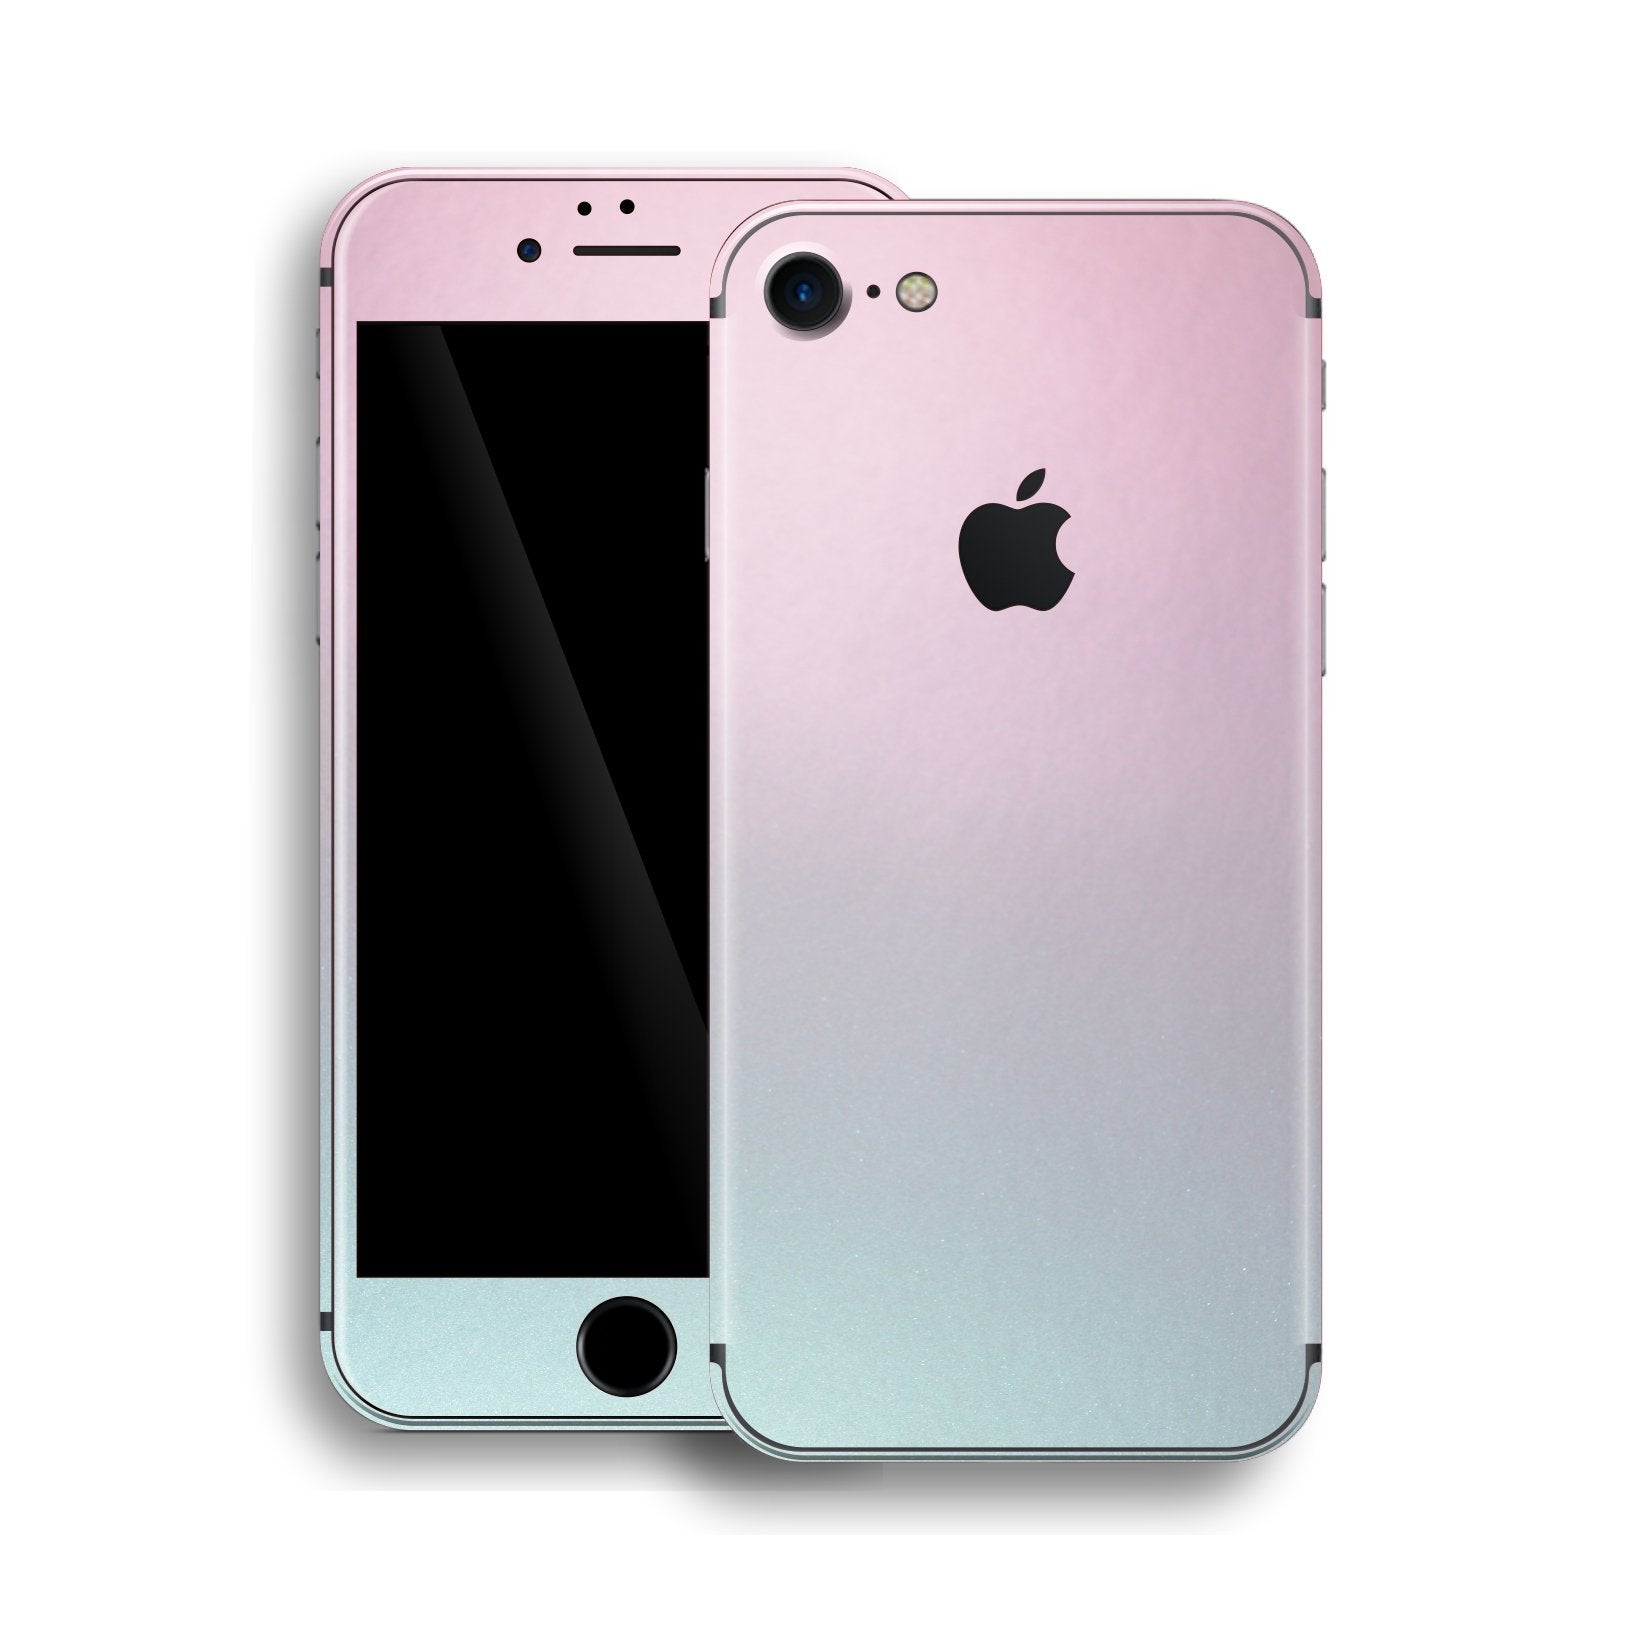 iPhone 8 Chameleon Amethyst Colour-changing Skin, Wrap, Decal, Protector, Cover by EasySkinz | EasySkinz.com